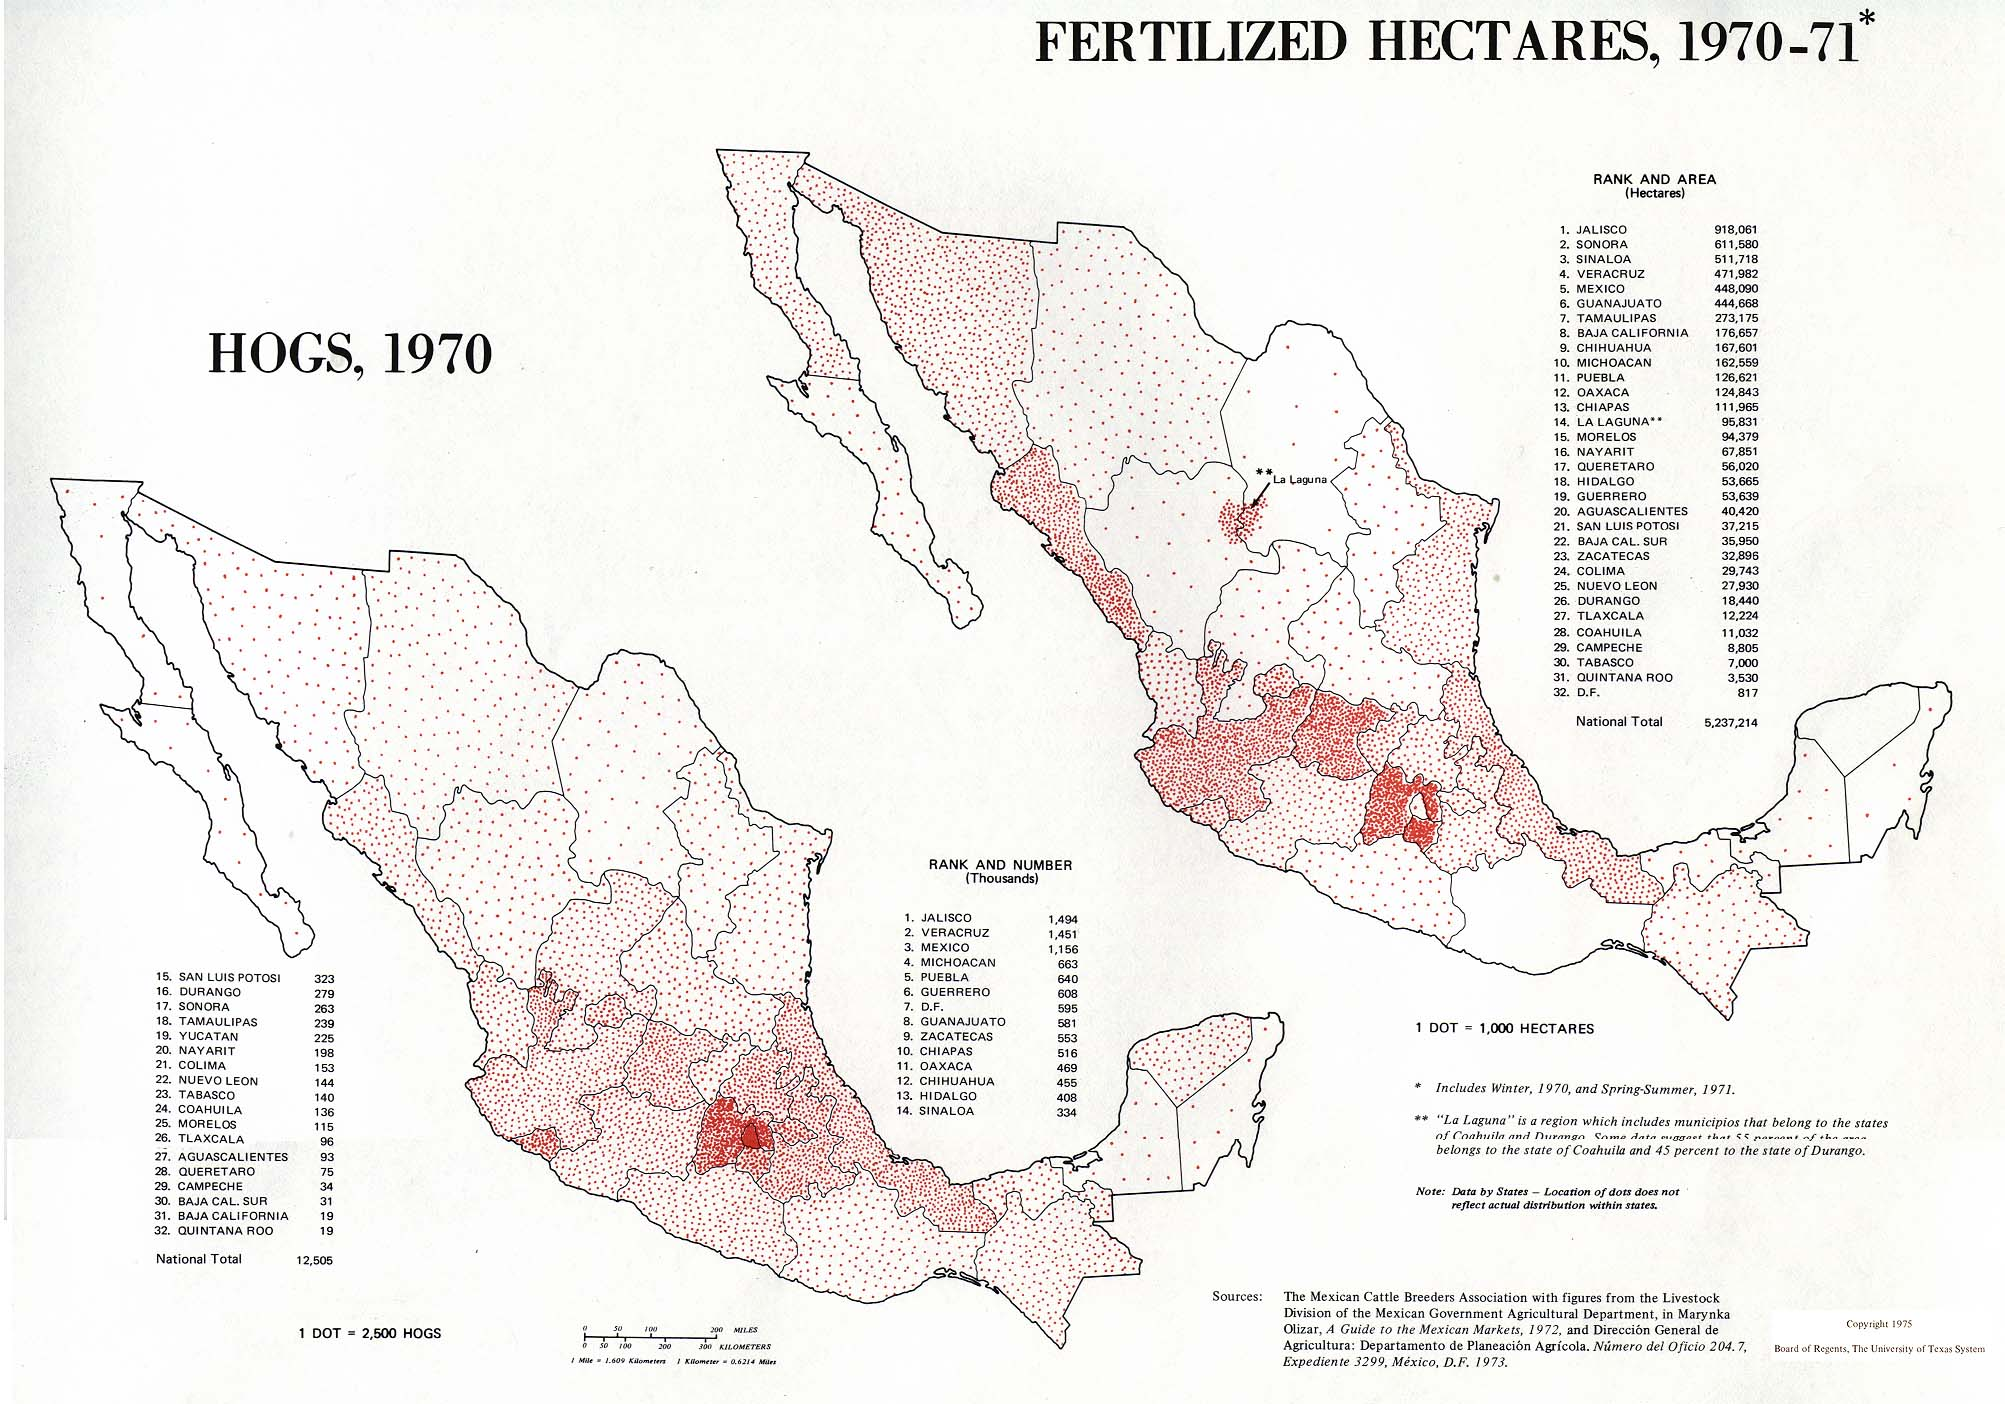 Maps of Hogs Production and Fertilized Hectares, Mexico 1970 - 1971